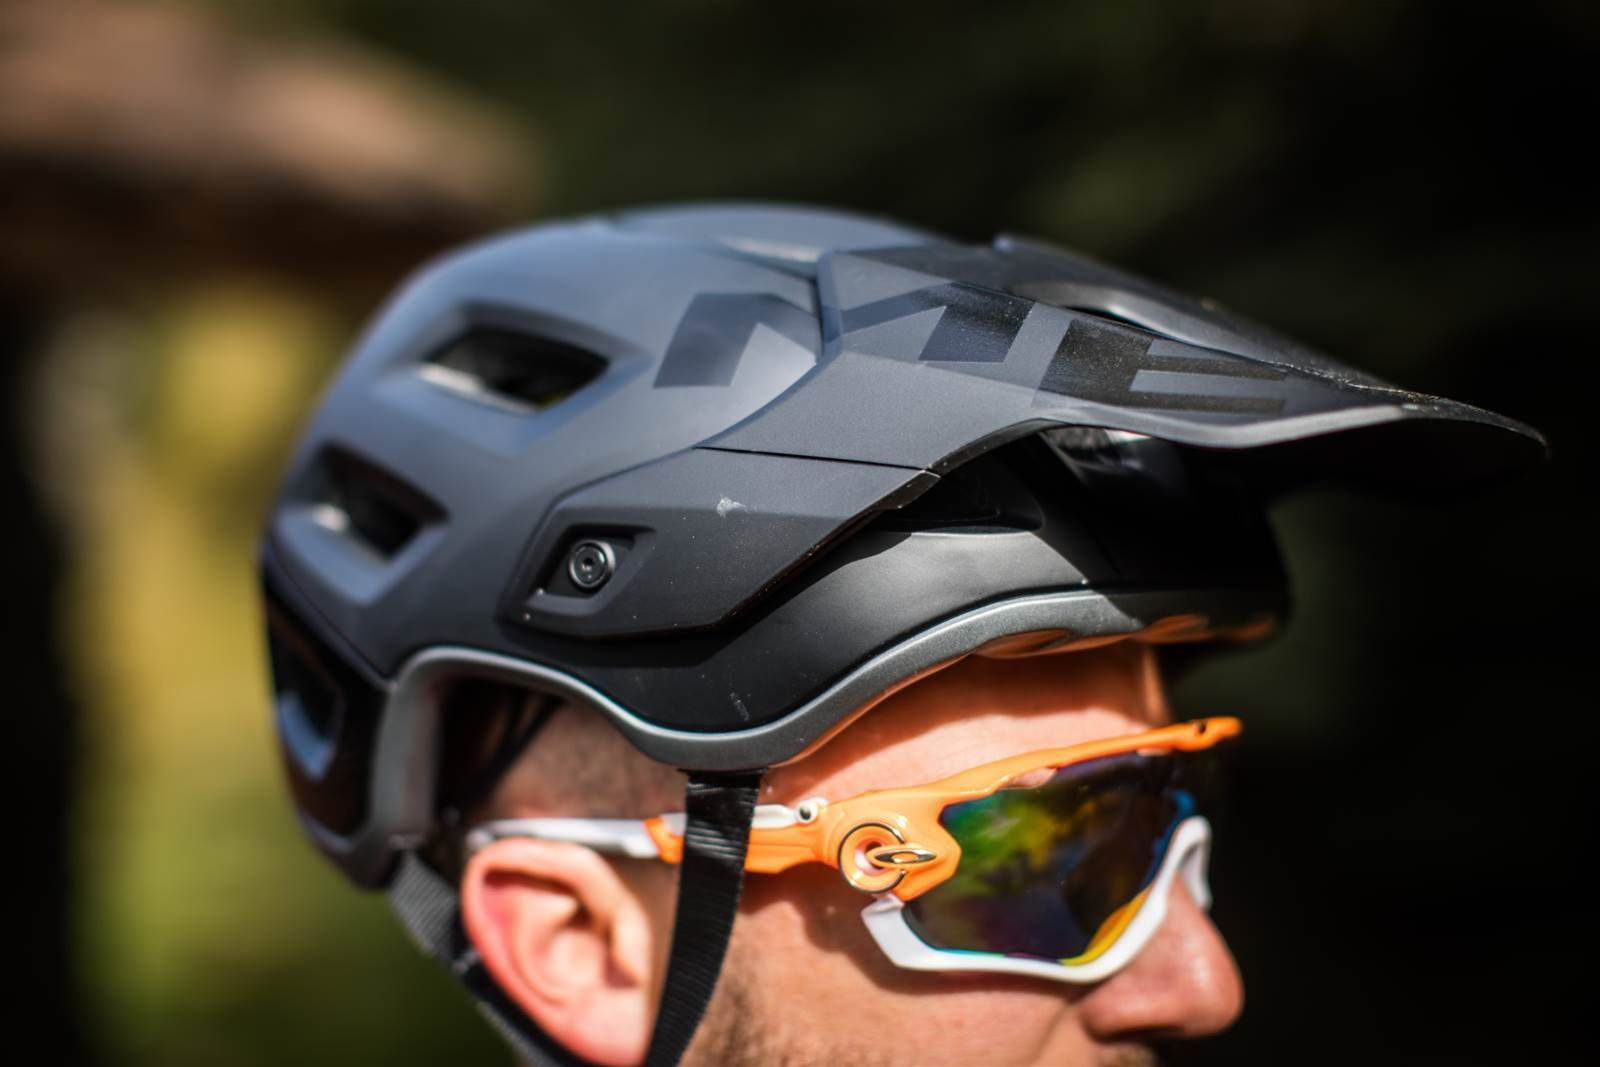 TESTED: MET Roam helmet